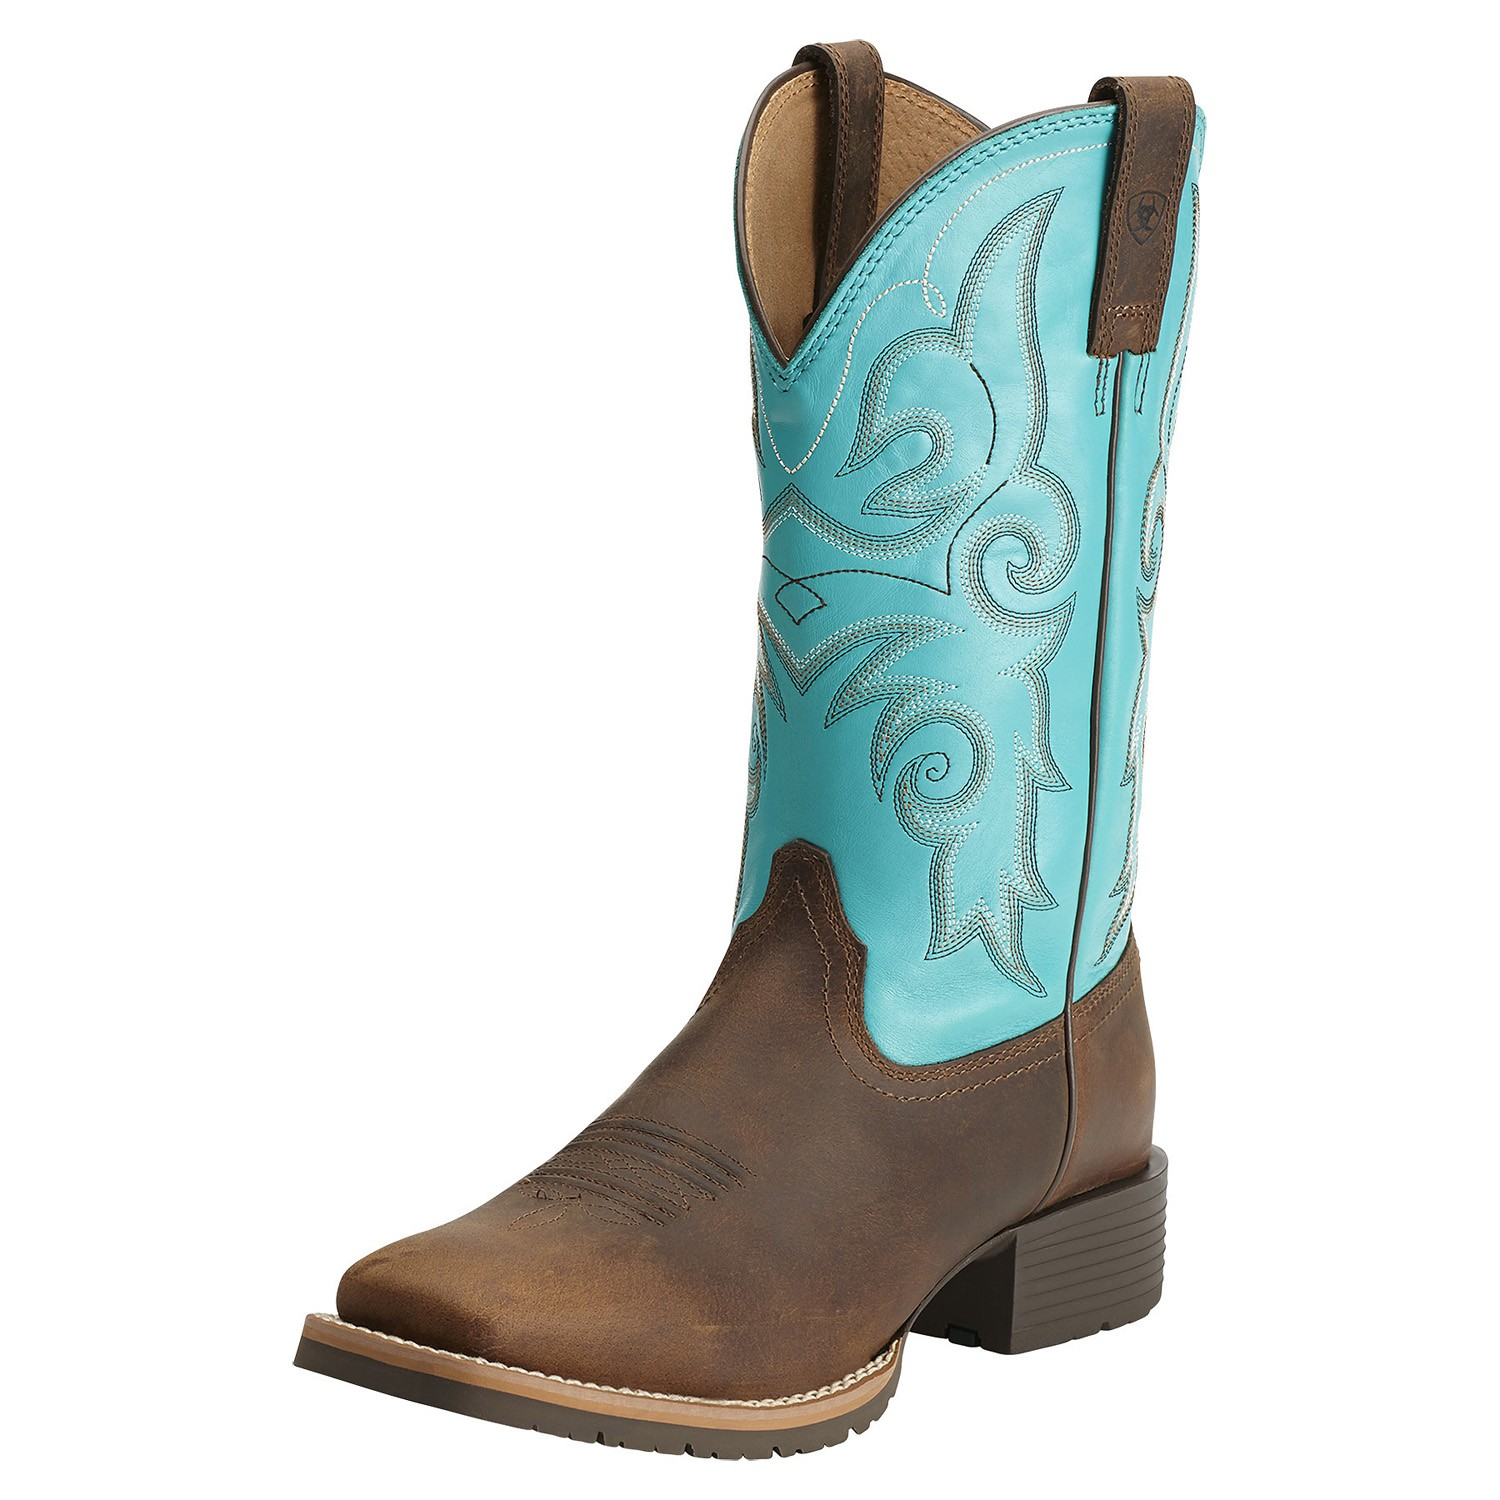 Ariat Boots Women Clearance Boot Yc